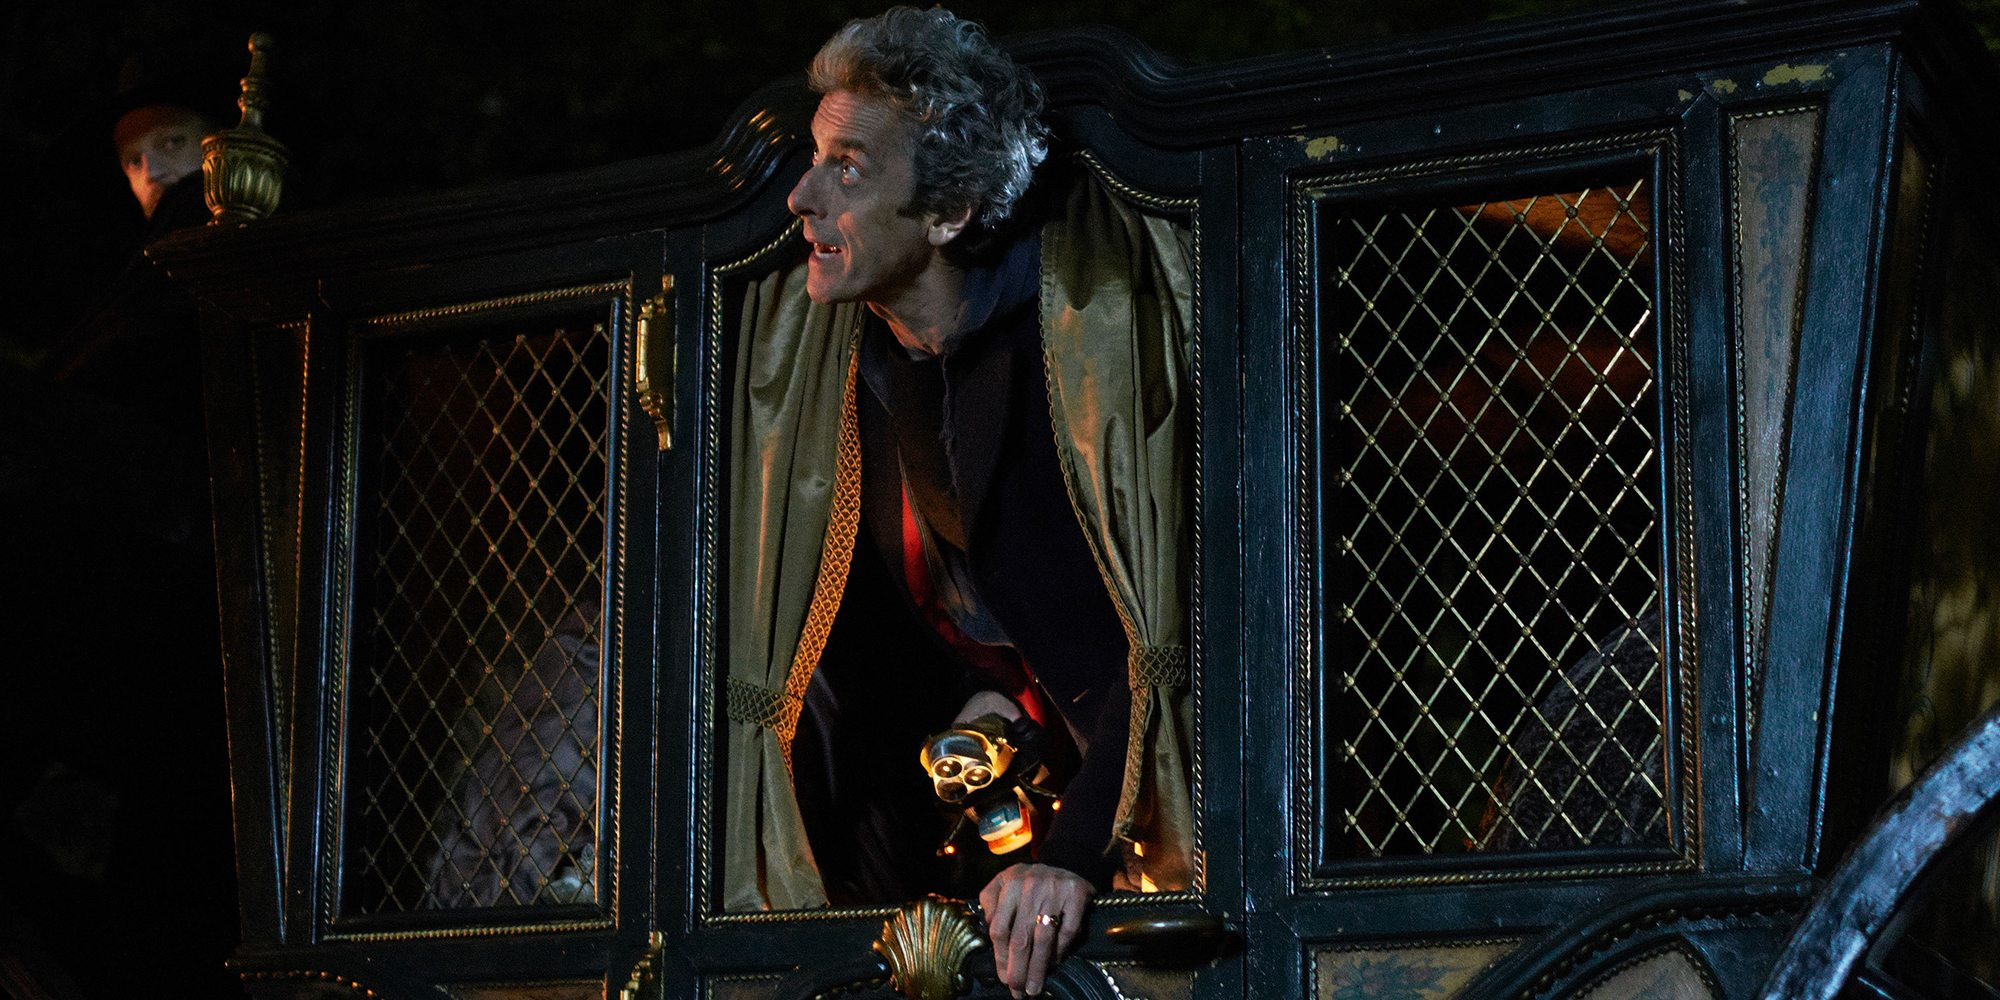 "'Doctor Who': ""The Woman Who Lived"" Gives Insight Into the Doctor"